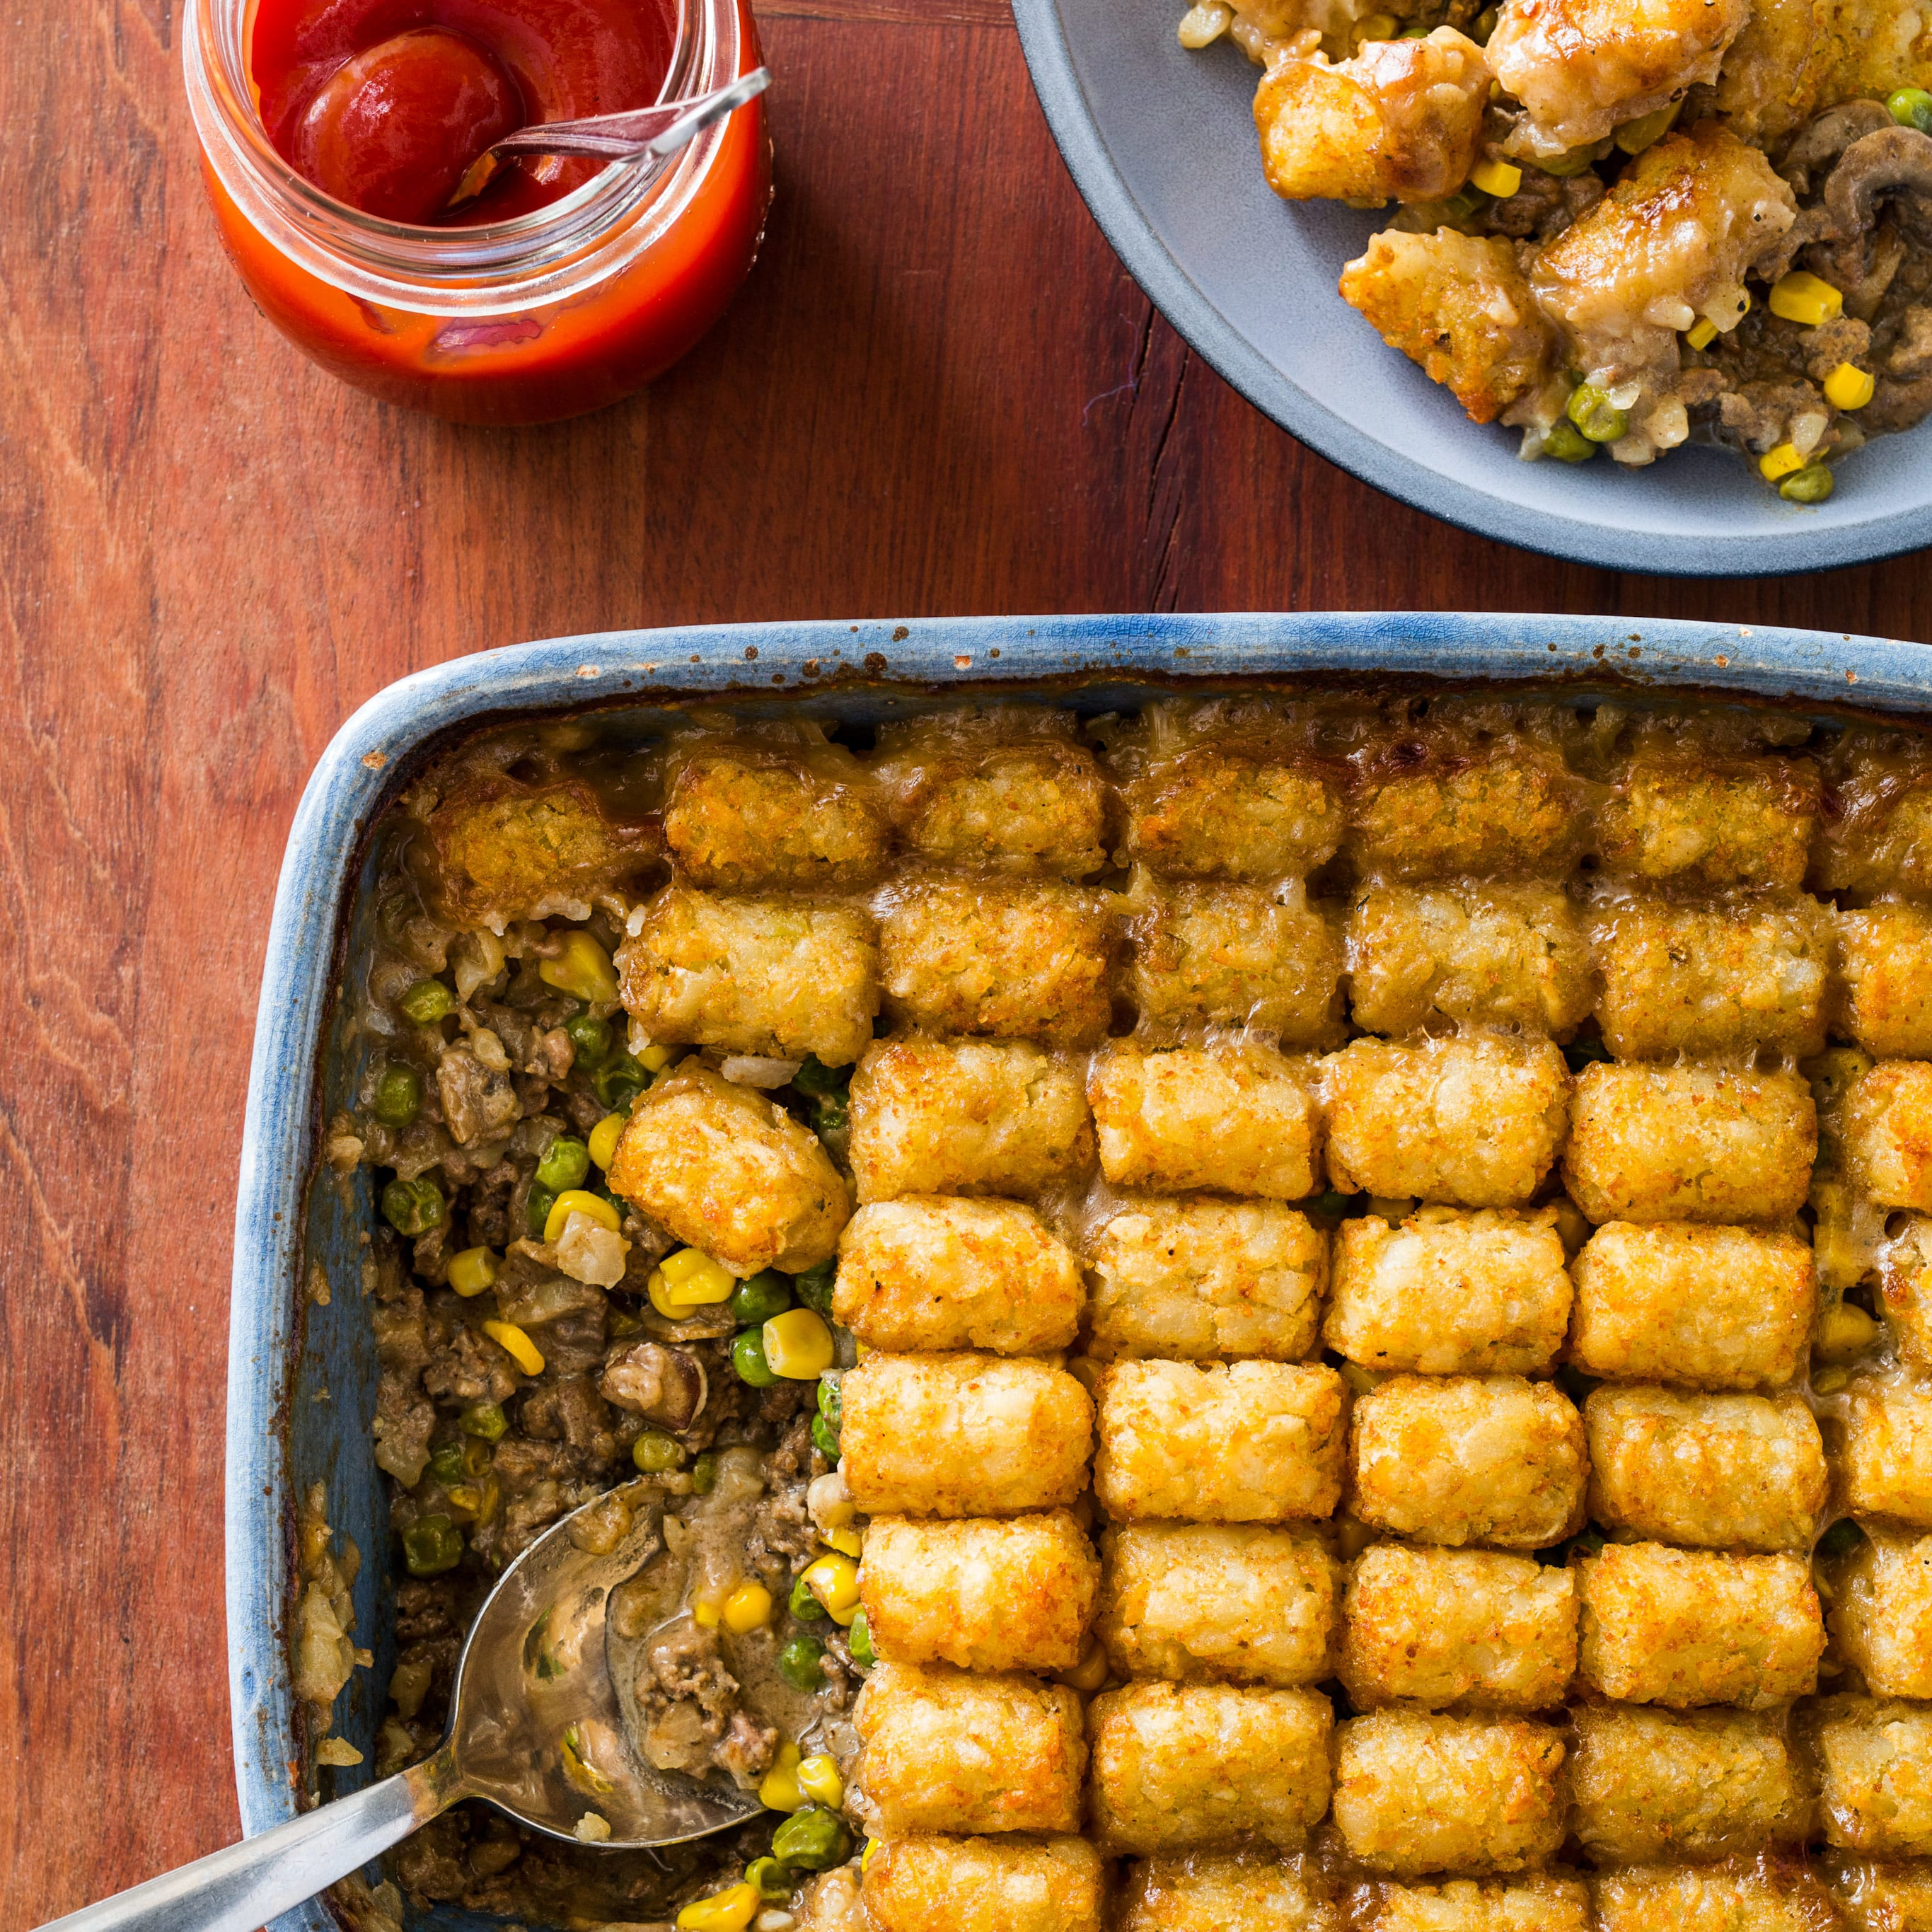 Tater Tot Hotdish | Cook's Country